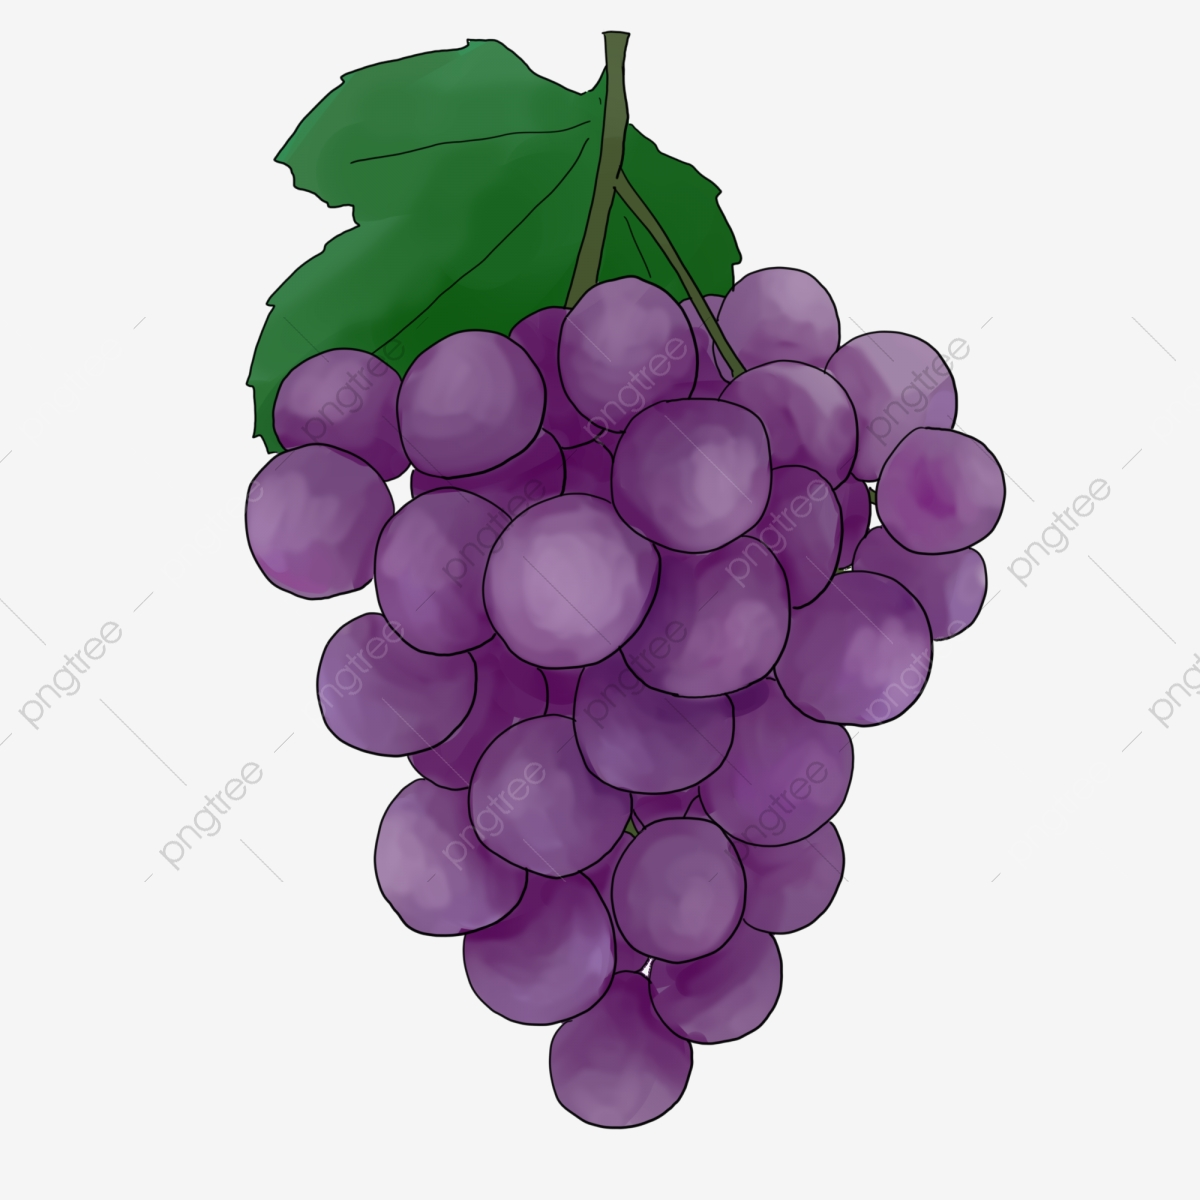 Grapes clipart painted. Hand fruit grape illustration